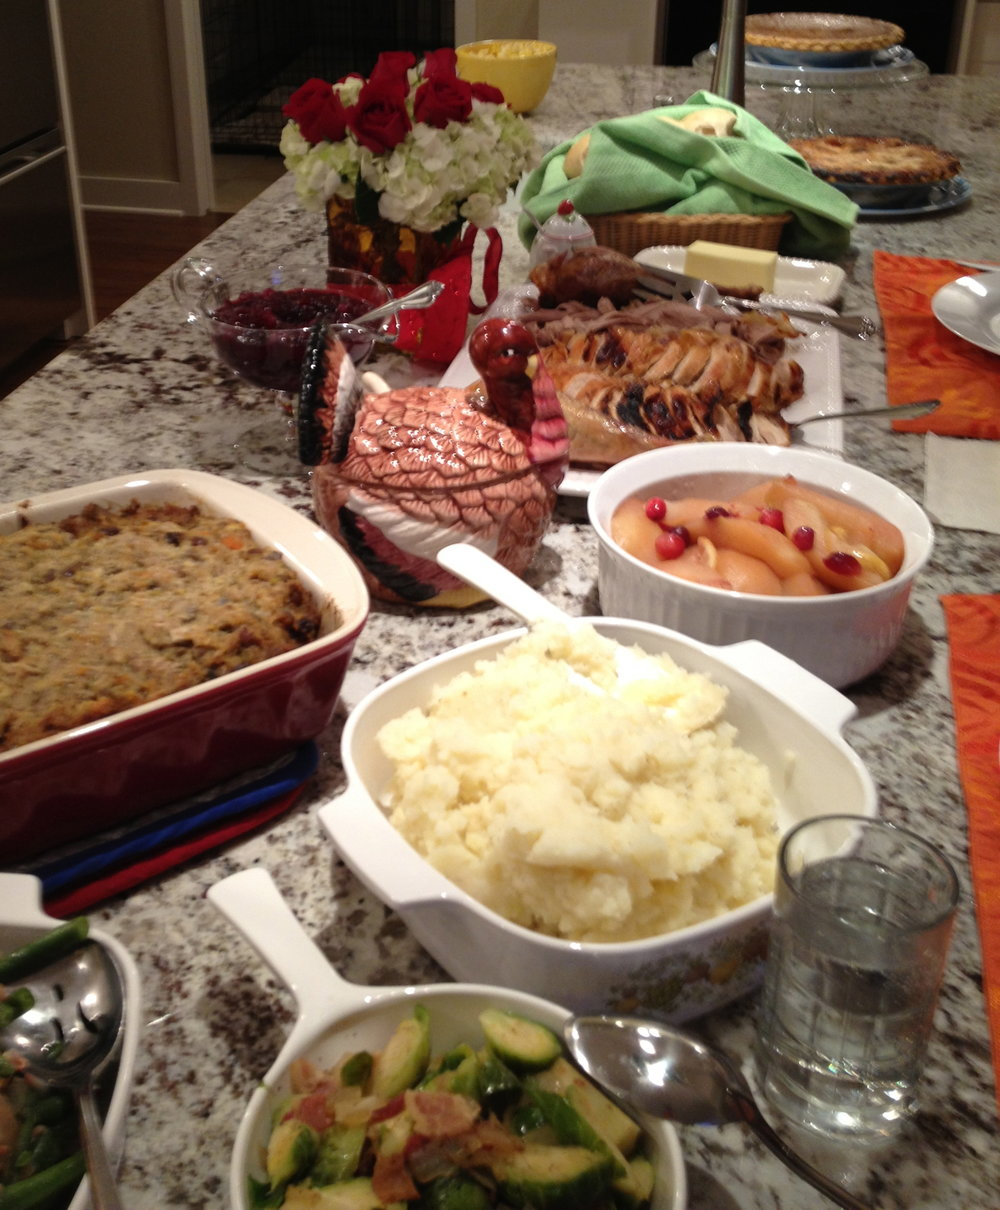 Some of our Thanksgiving meal.